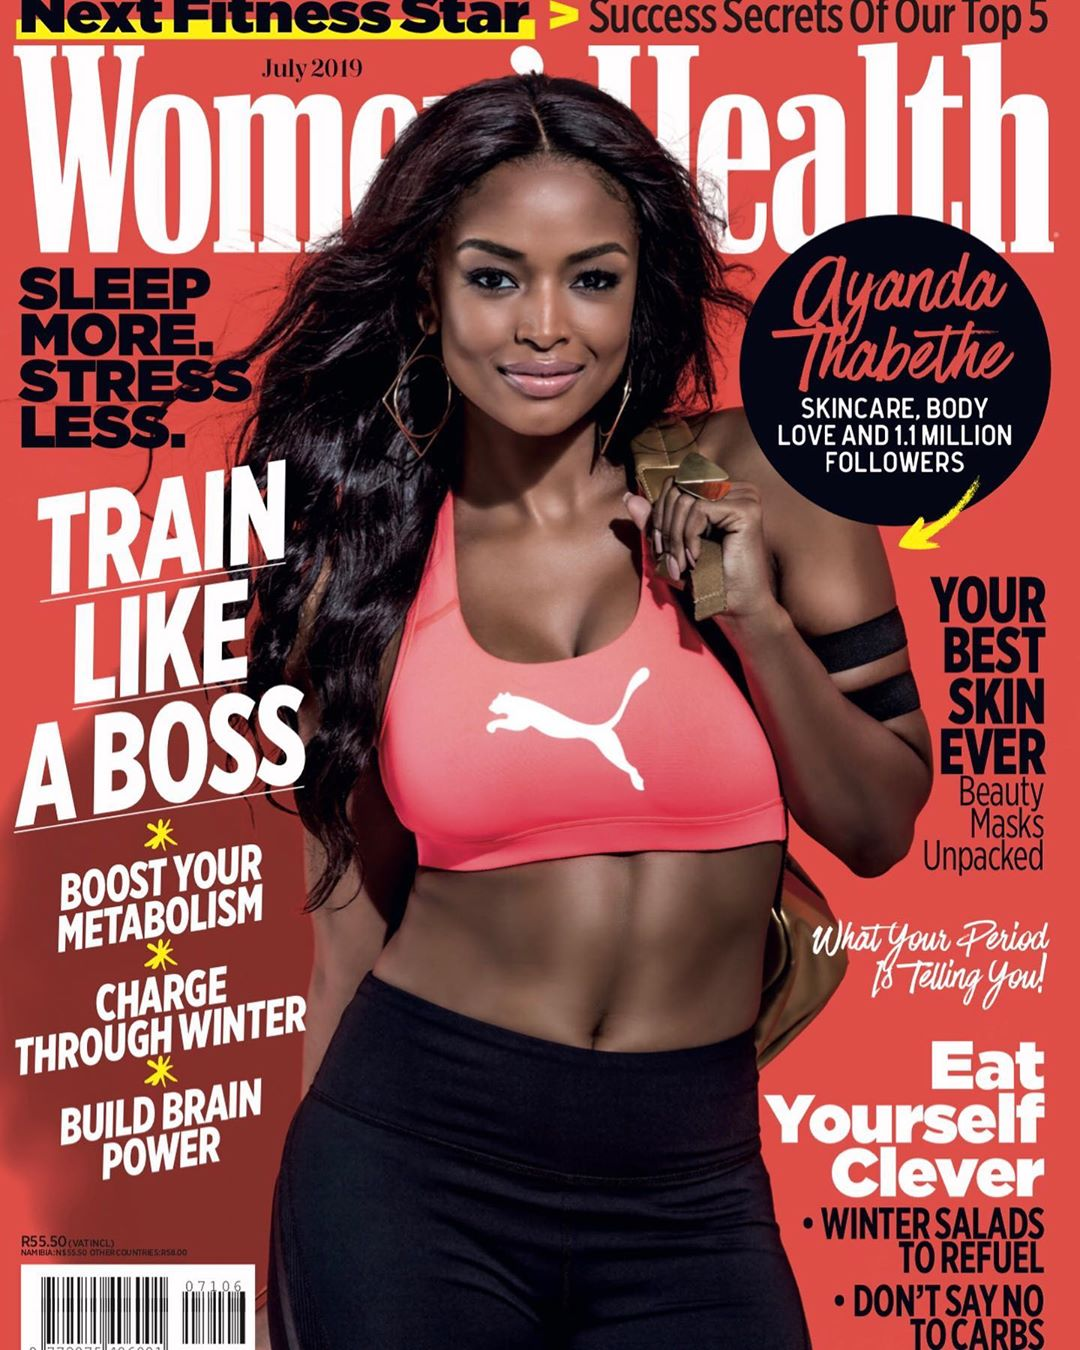 South African Actress Ayanda Thabethe is Body Goals on the Cover of Women's Health Magazine